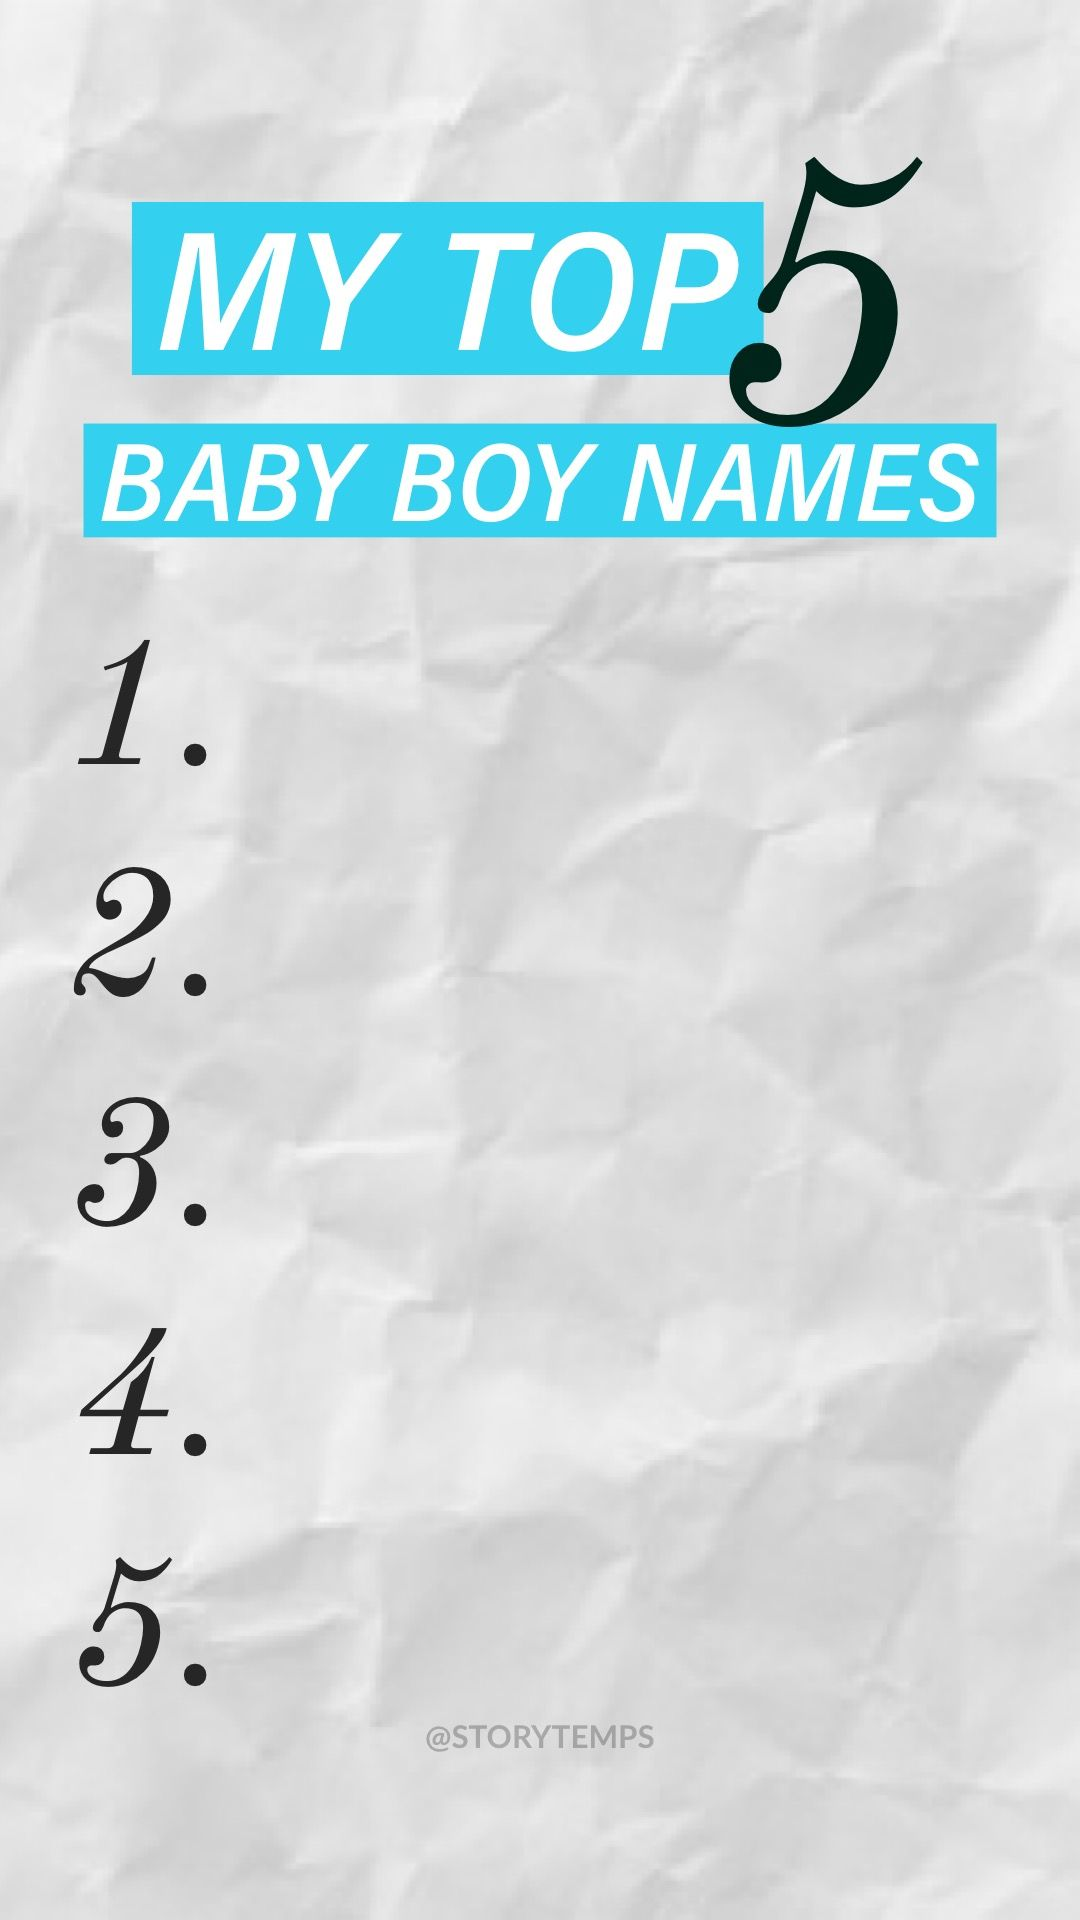 List your top 5 favorite baby boy names! #storytemps # ...